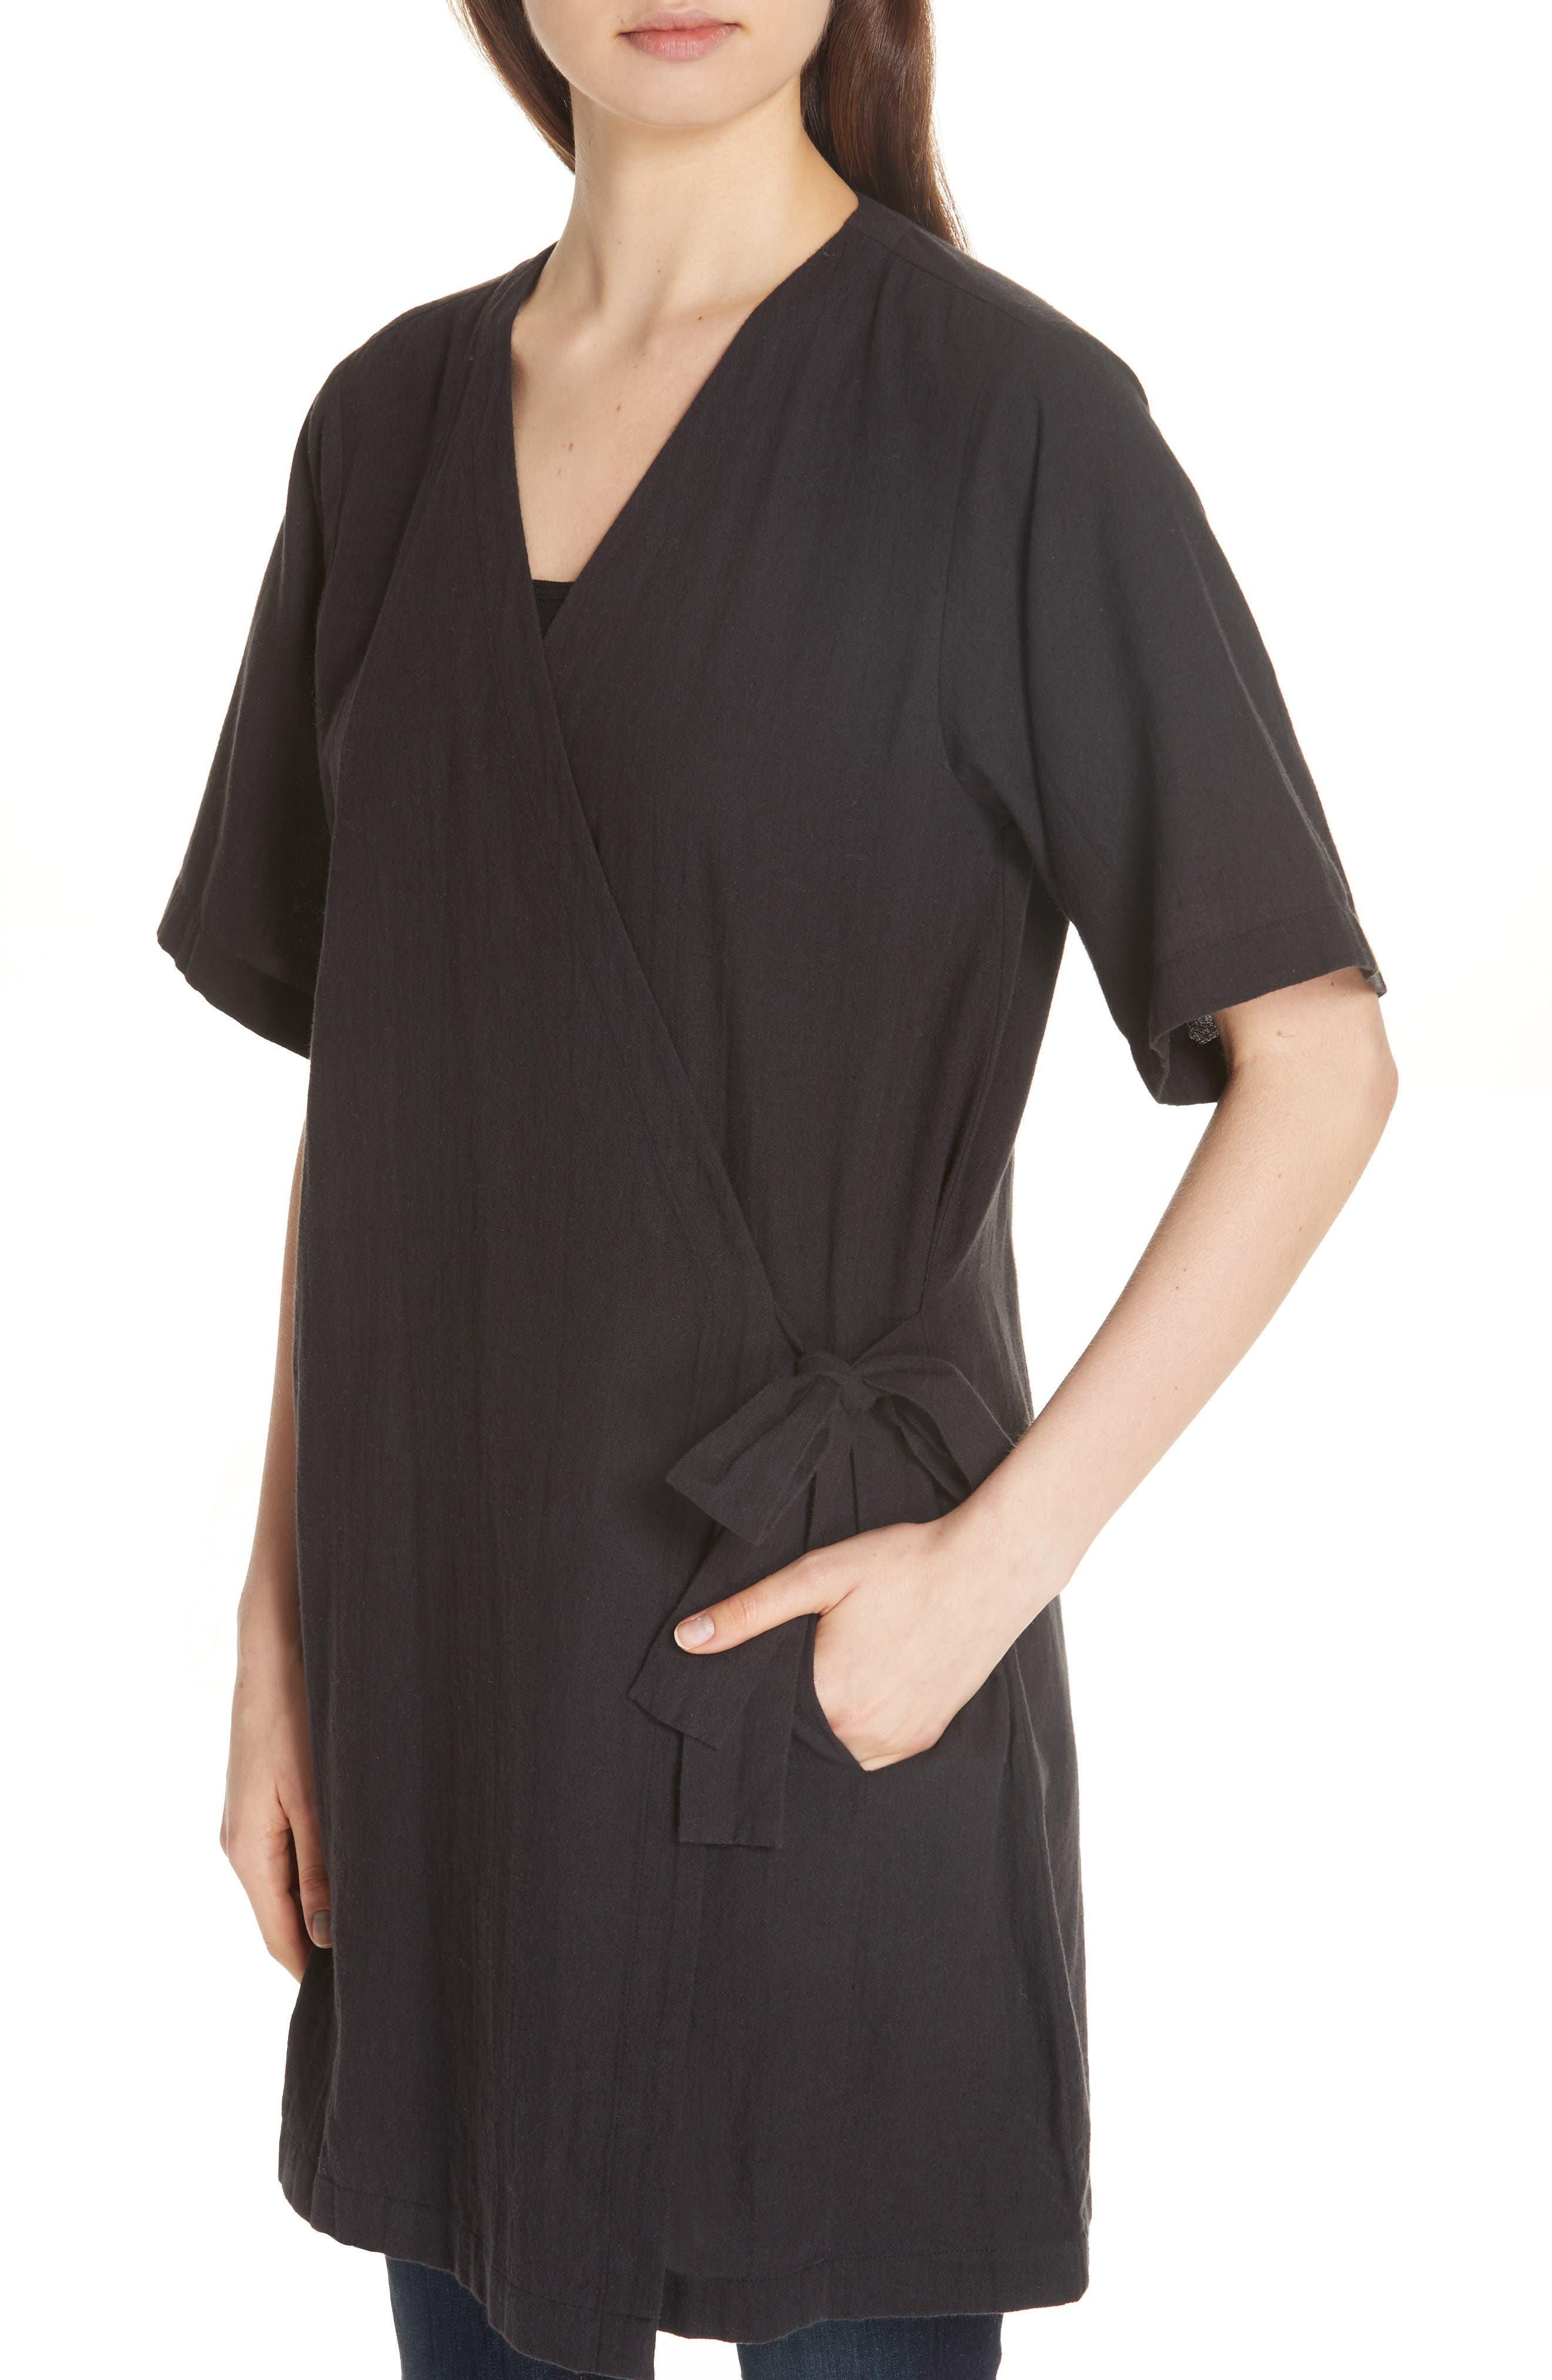 Kimono Sleeve Organic Cotton Blend Jacket,                             Alternate thumbnail 4, color,                             Black